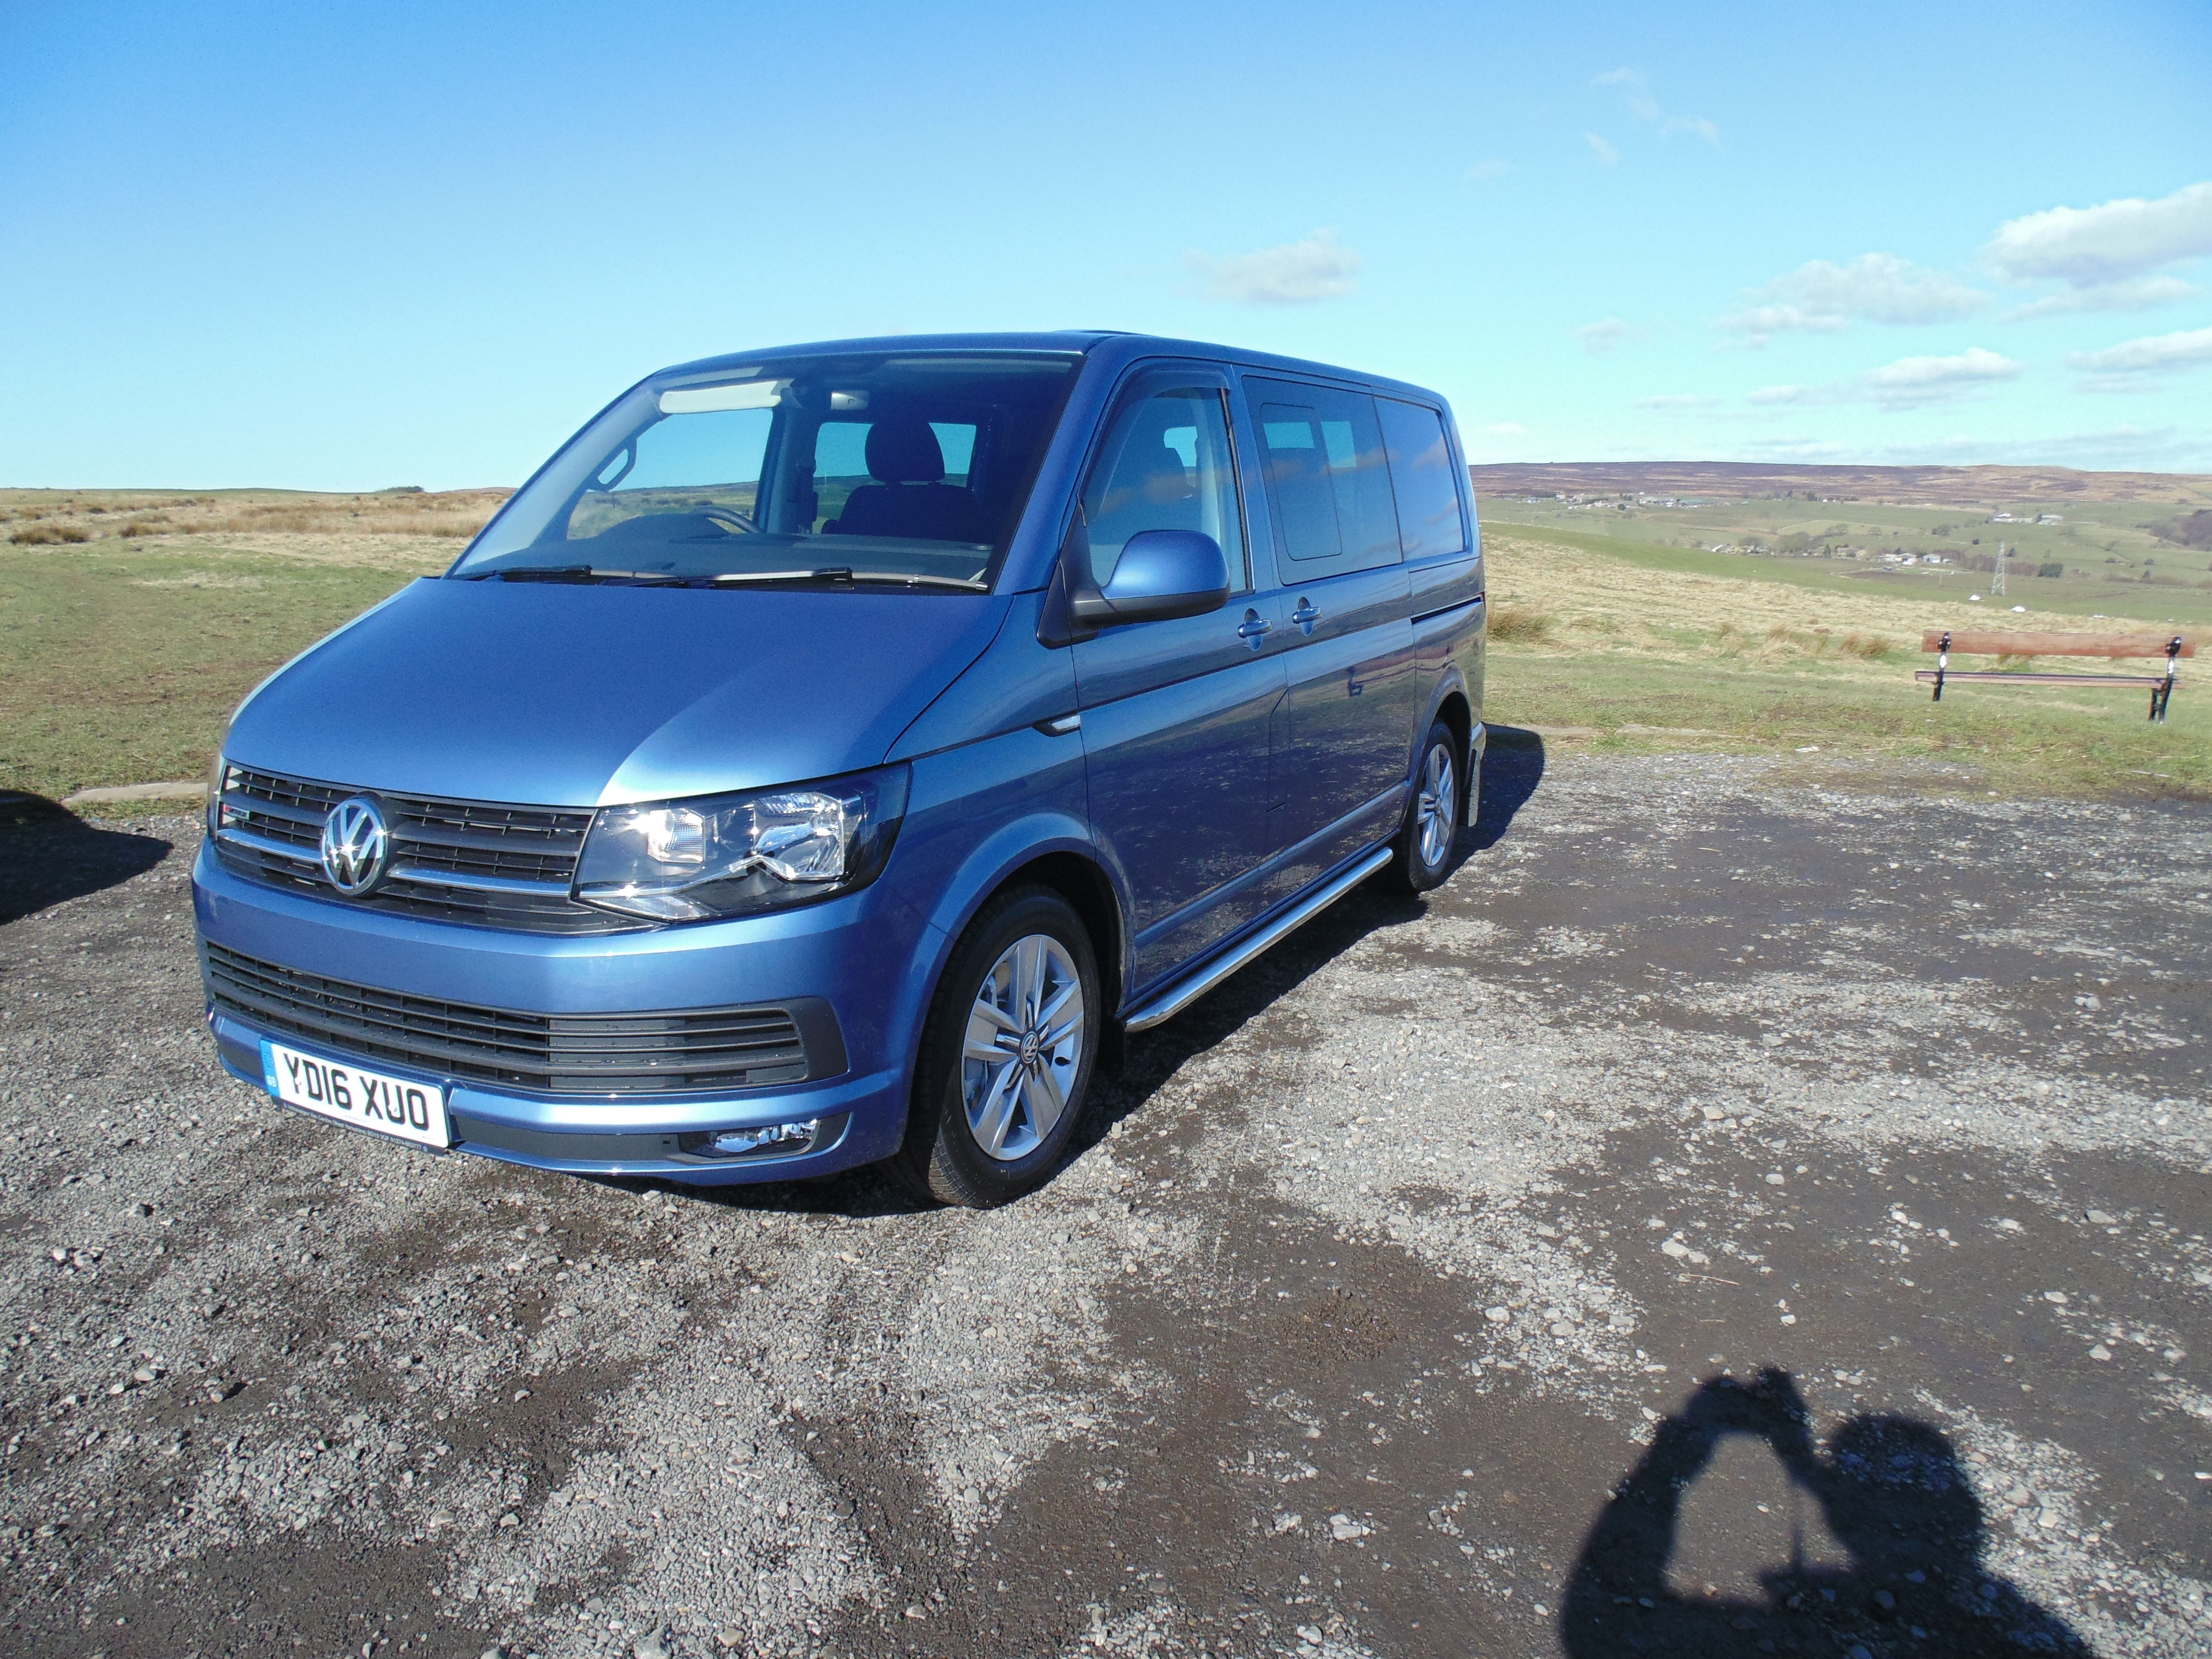 VW Transporter 180Bi Turbo KOMBI 5 Seats